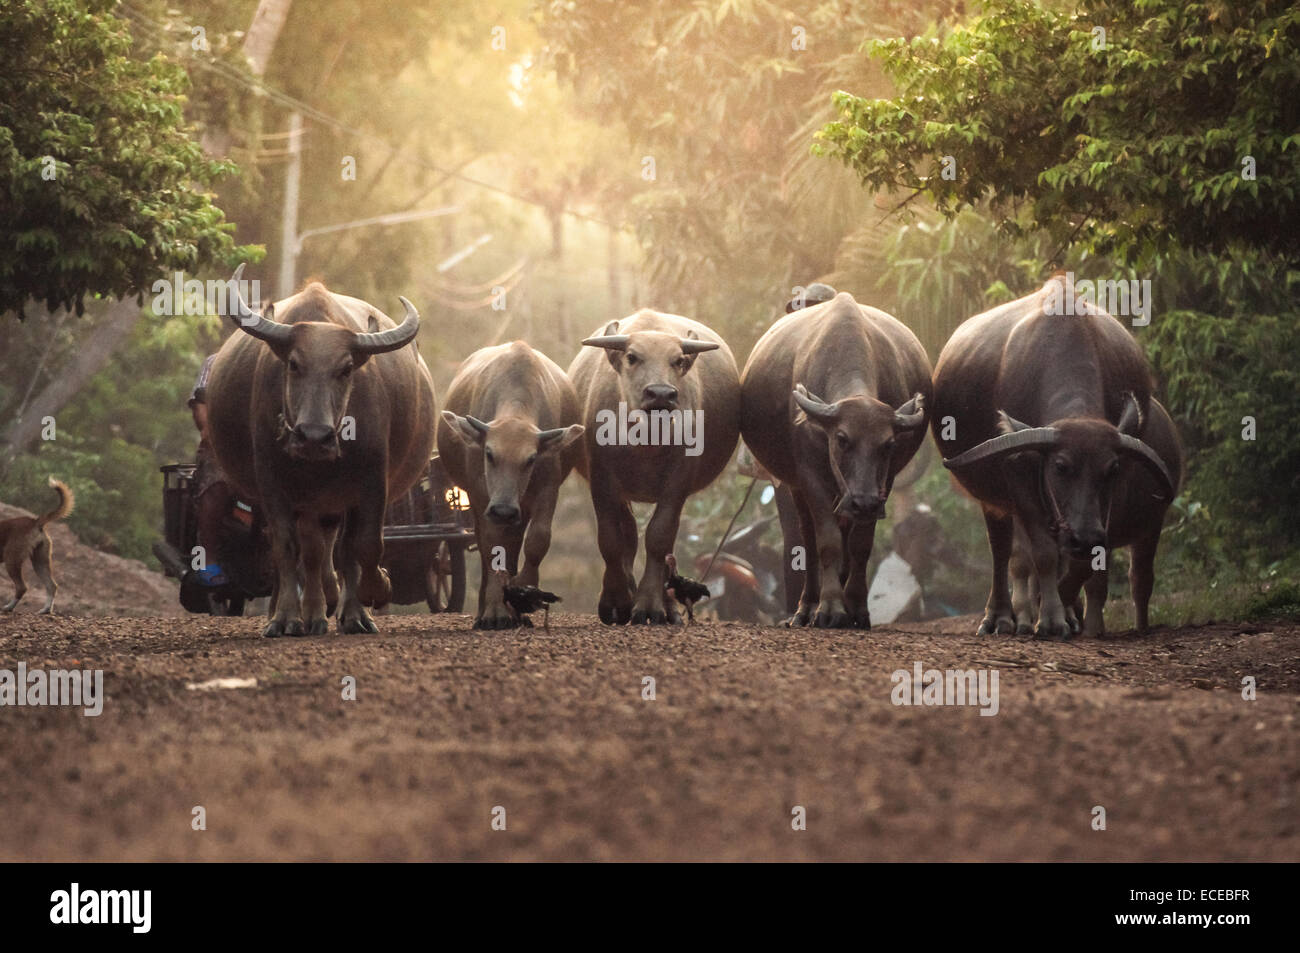 Buffalos in forest - Stock Image